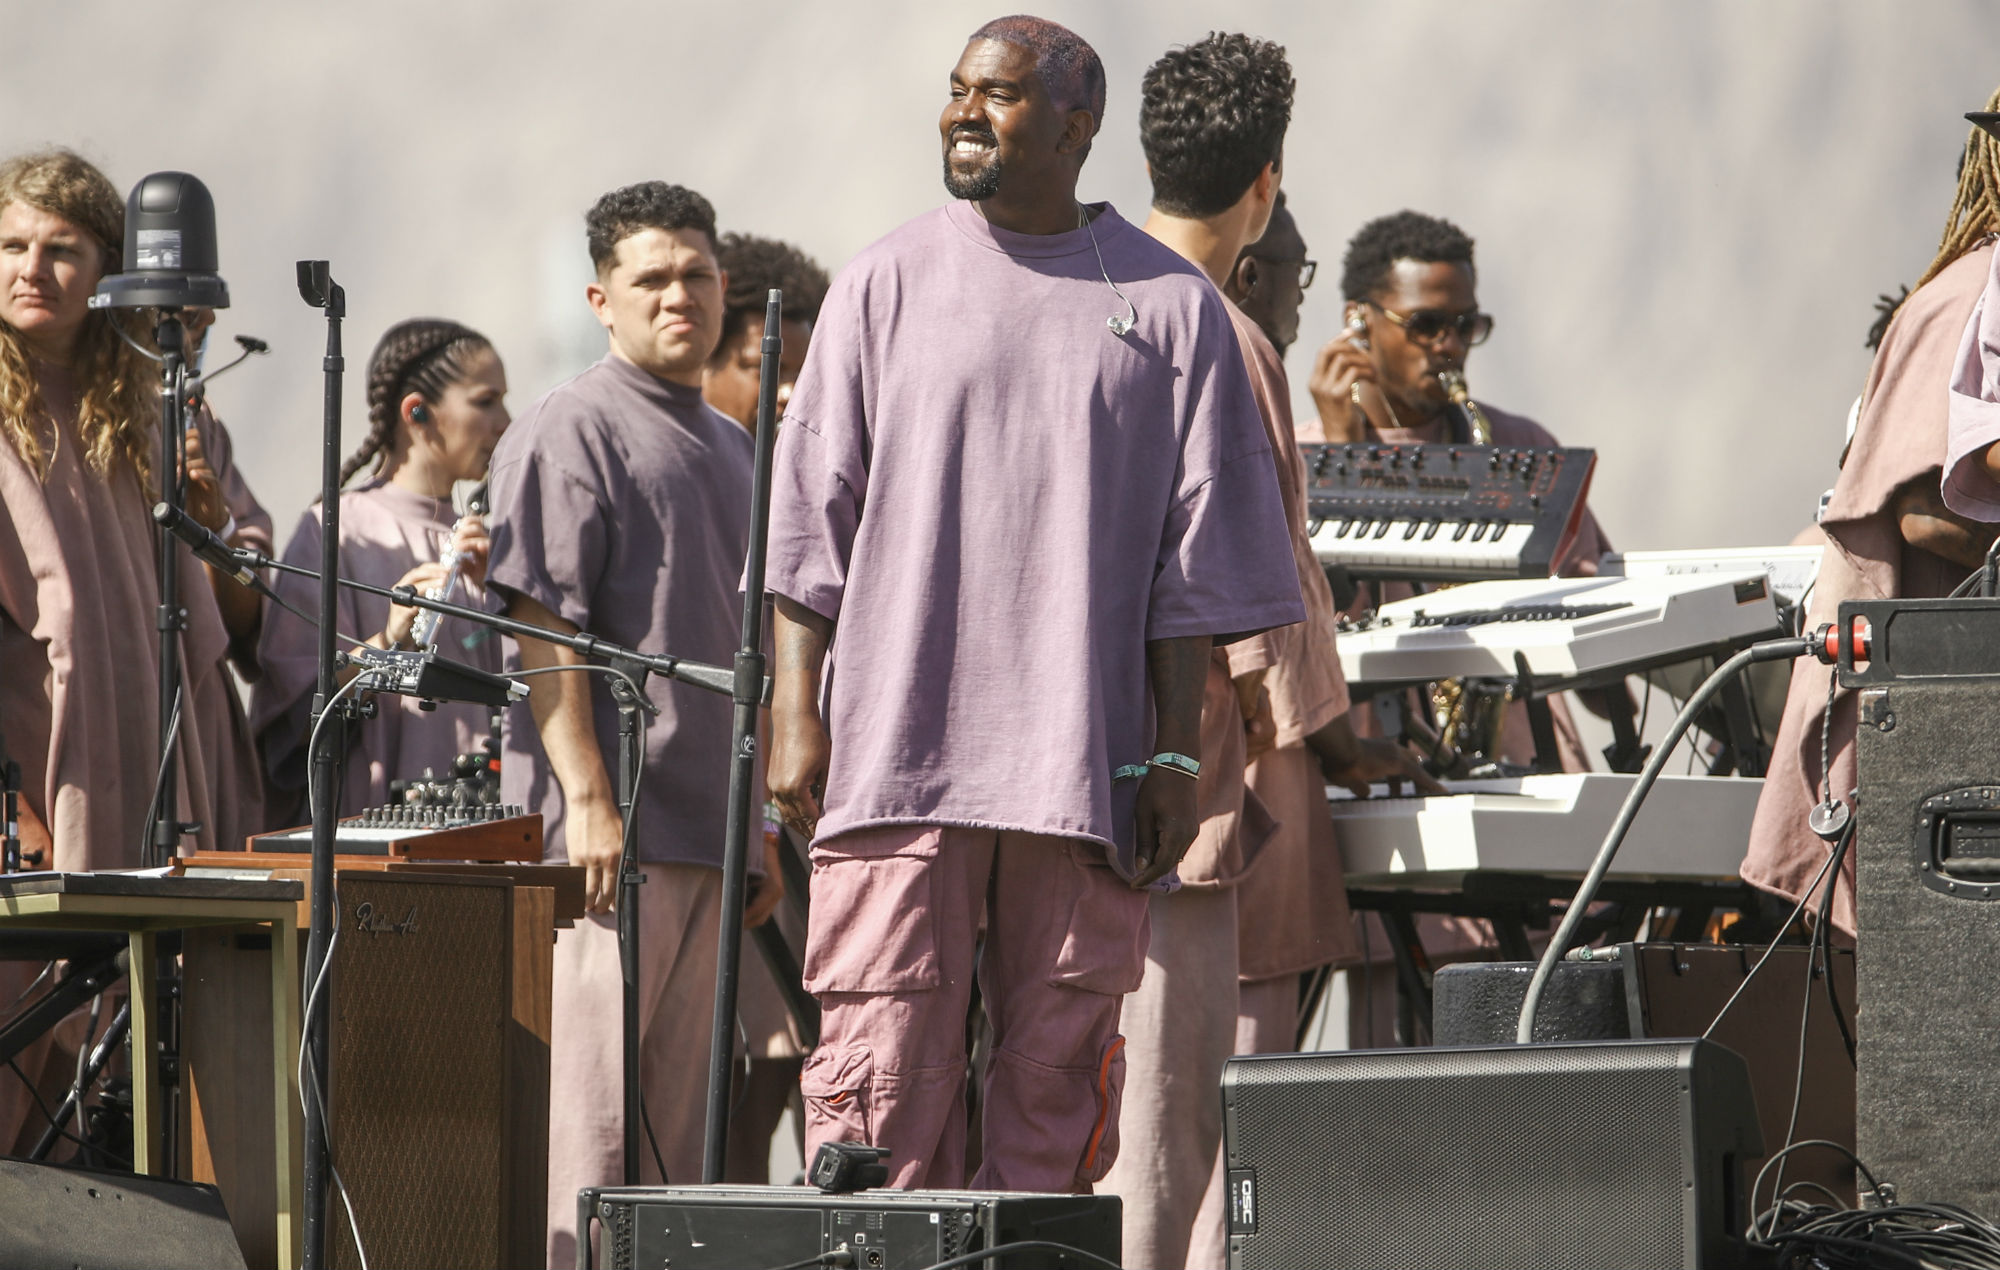 Watch Kanye West perform for prison inmates as he brings Sunday Service to Houston jail